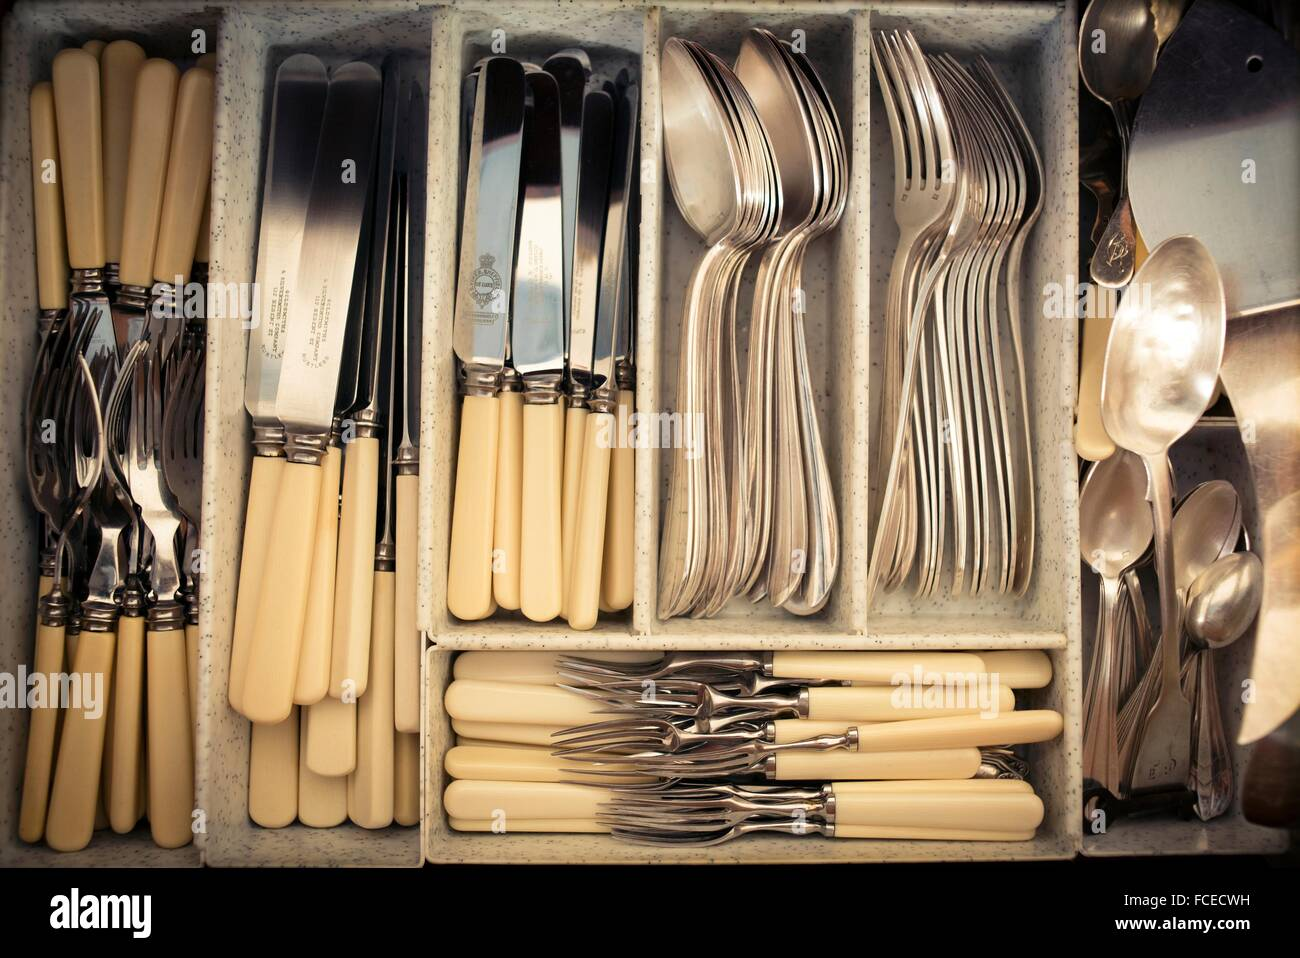 Cutlery In A Drawer Full Of Silverware. Fish Cutlery, Knives, Spoons,  Holders, Dessert Cutlery, Coffee Spoons And Several